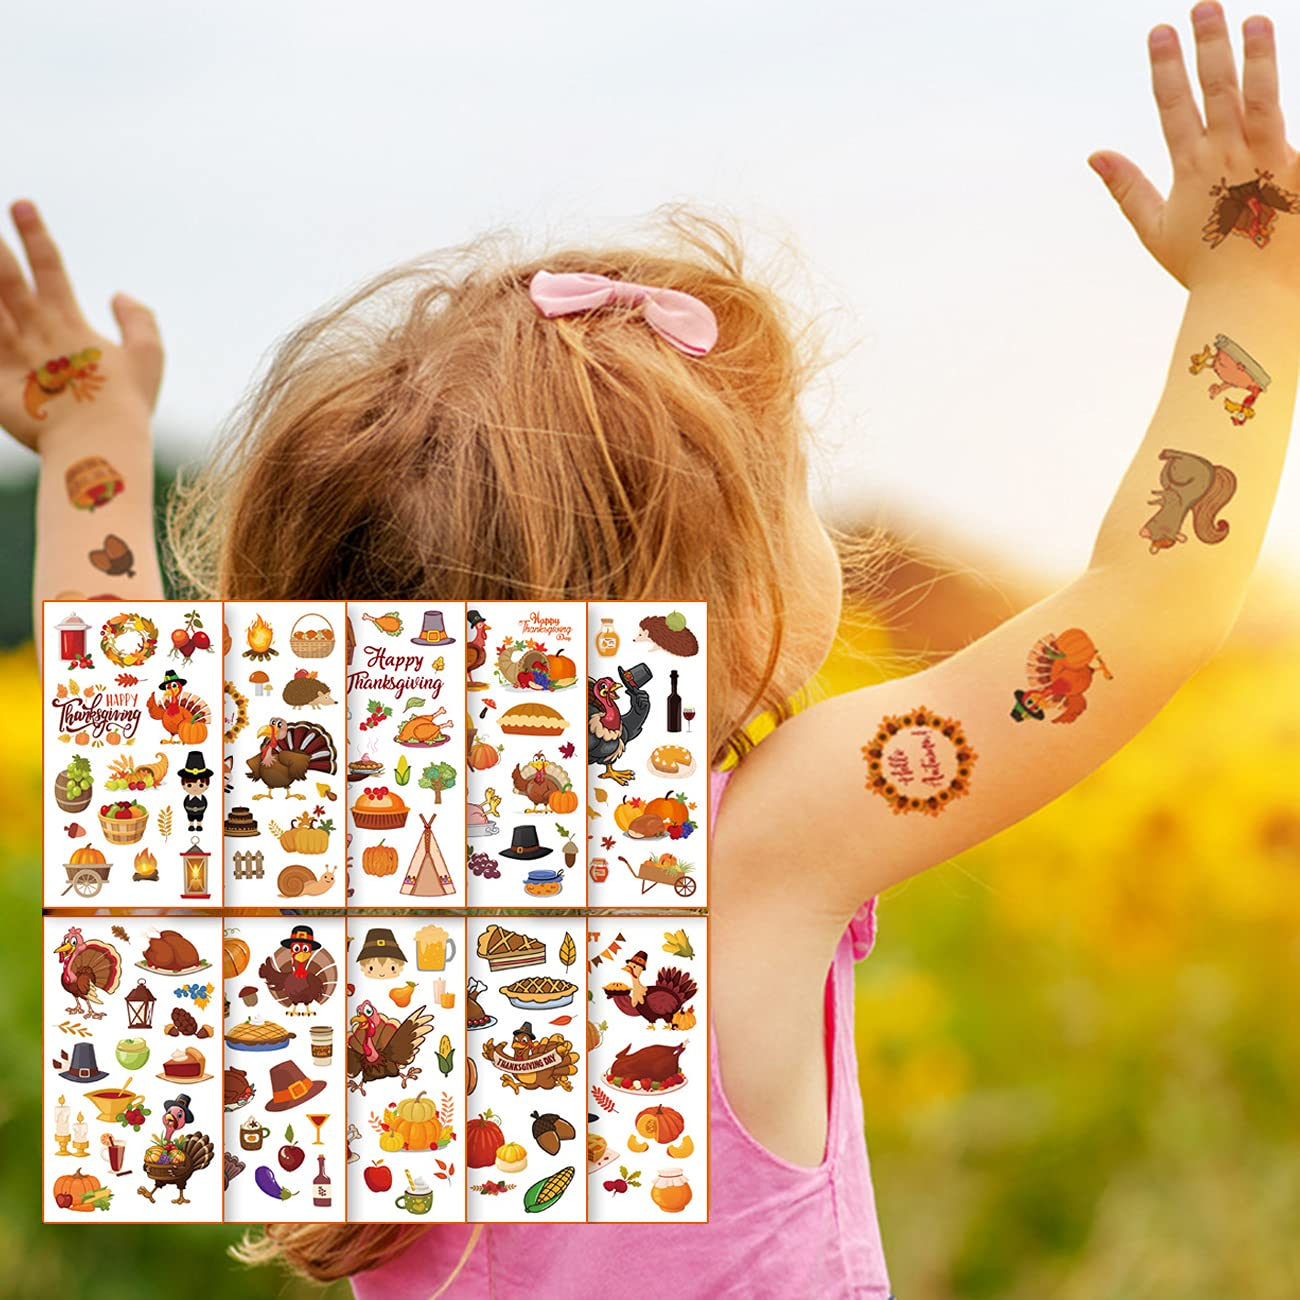 Kids Thanksgiving Day Temporary Tattoo 10 Stickers Sheets Autumn New arrival Seattle Mall